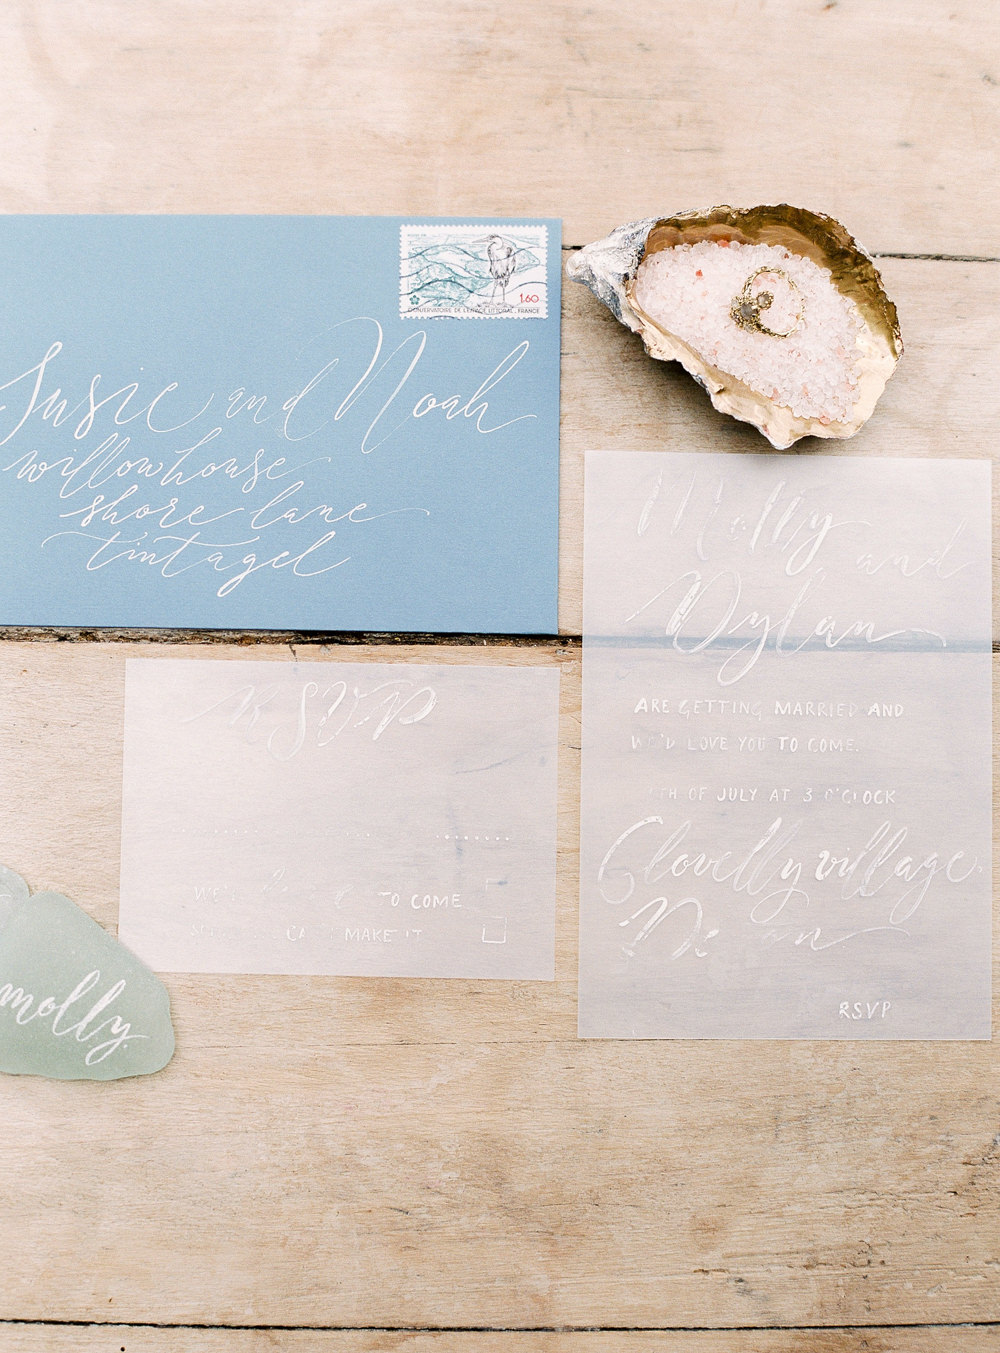 Opaque wedding stationery